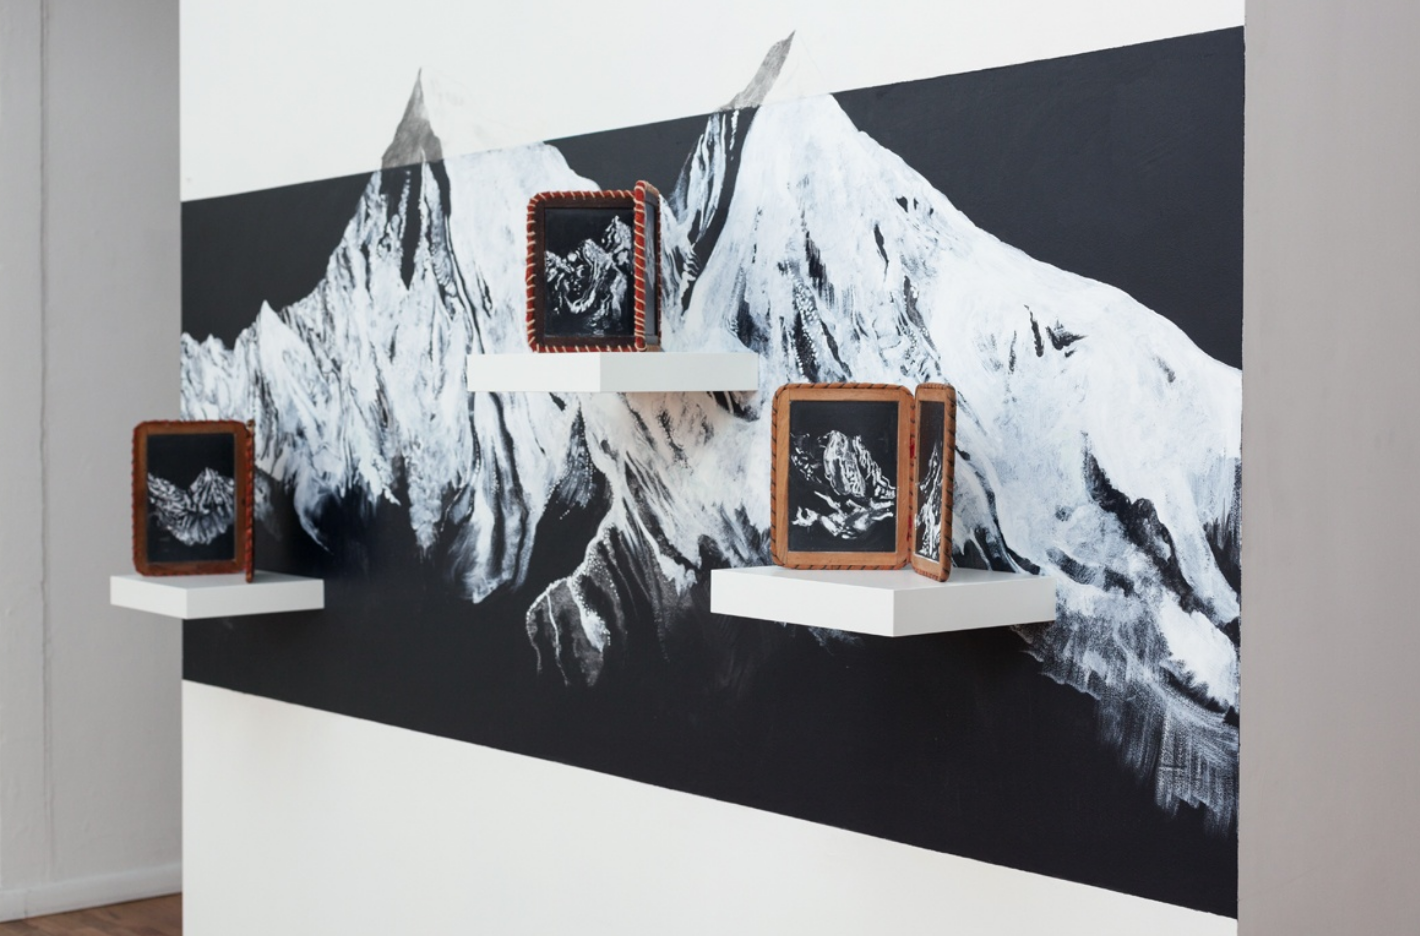 The Right Place ( views of mountain ranges I have spent time with), 2018, vintage school house slates, chalk, graphite, acrylic, shelves, dimensions variable